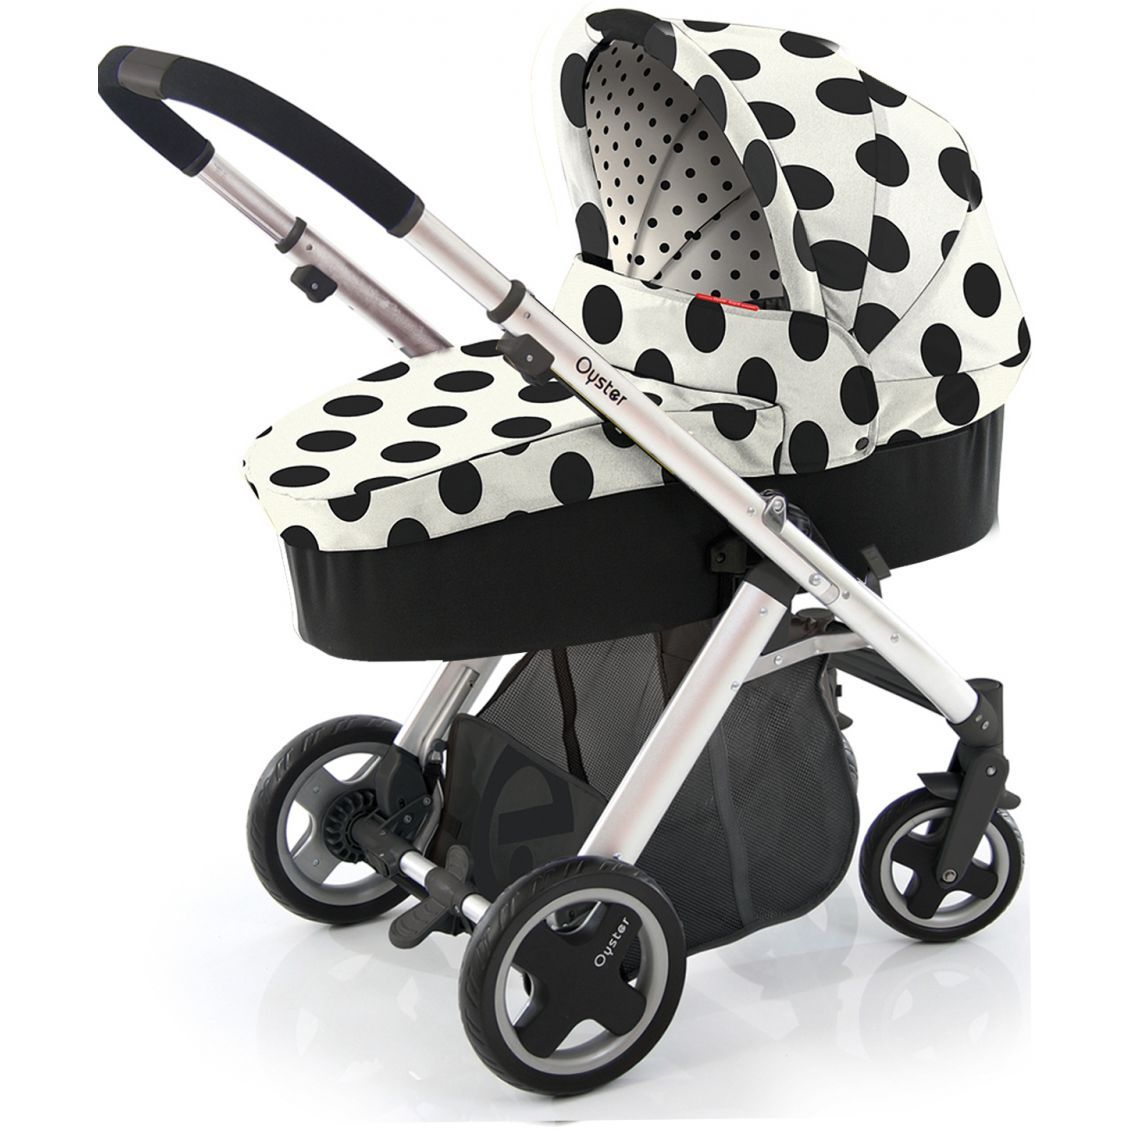 Babystyle Oyster Vogue 3 in 1 Pram Dalmatian Not practical